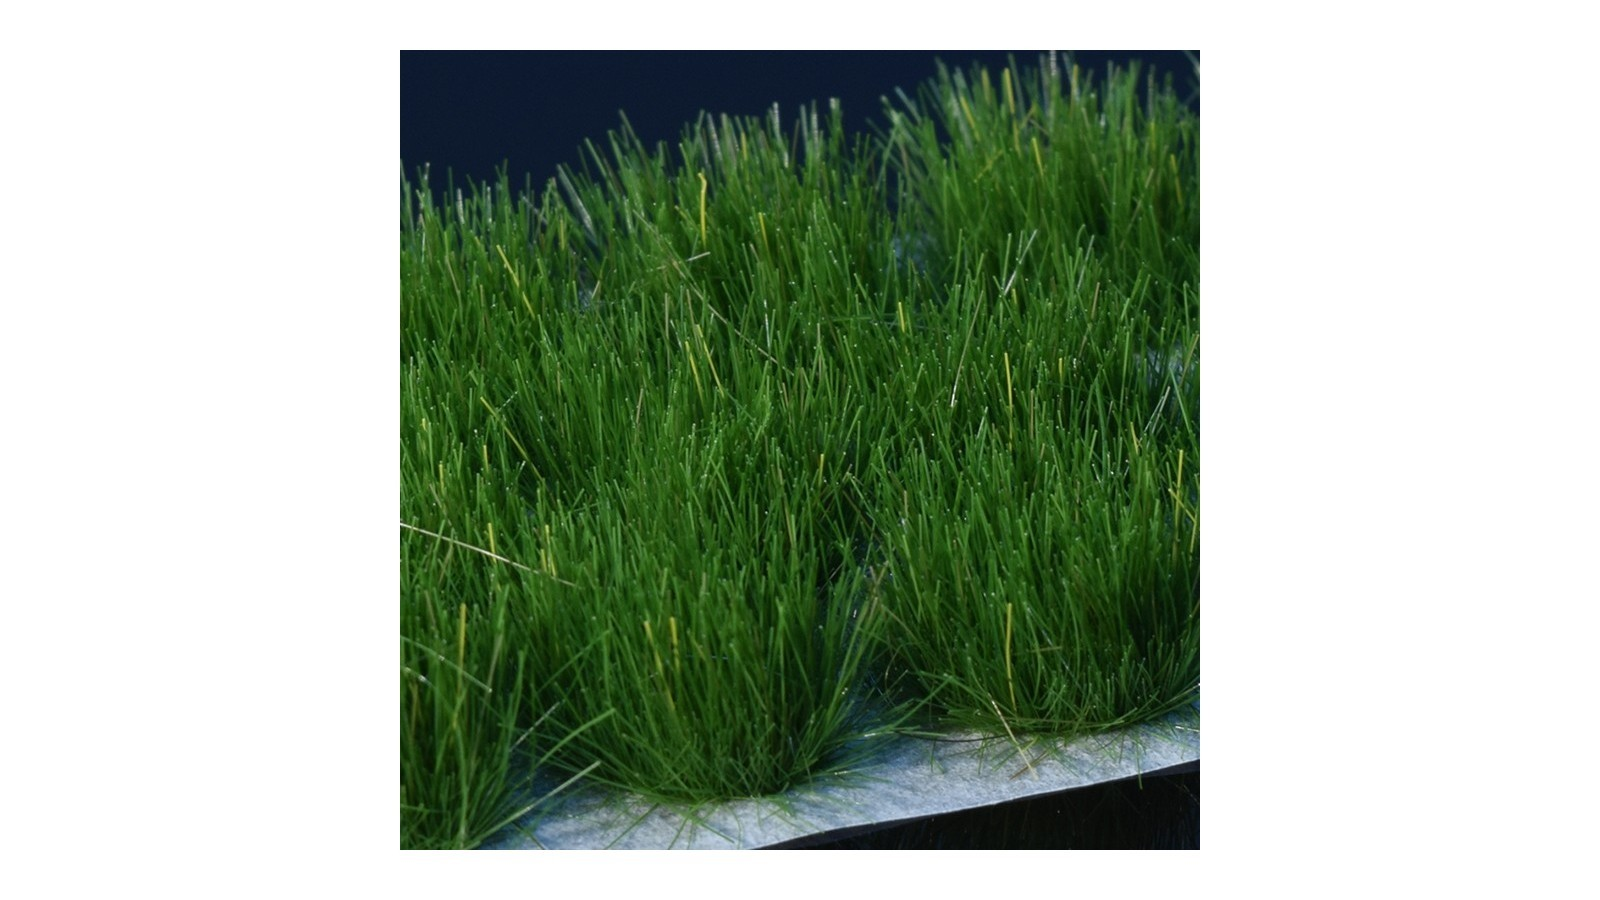 Gamer's Grass Strong Green XL tufts image